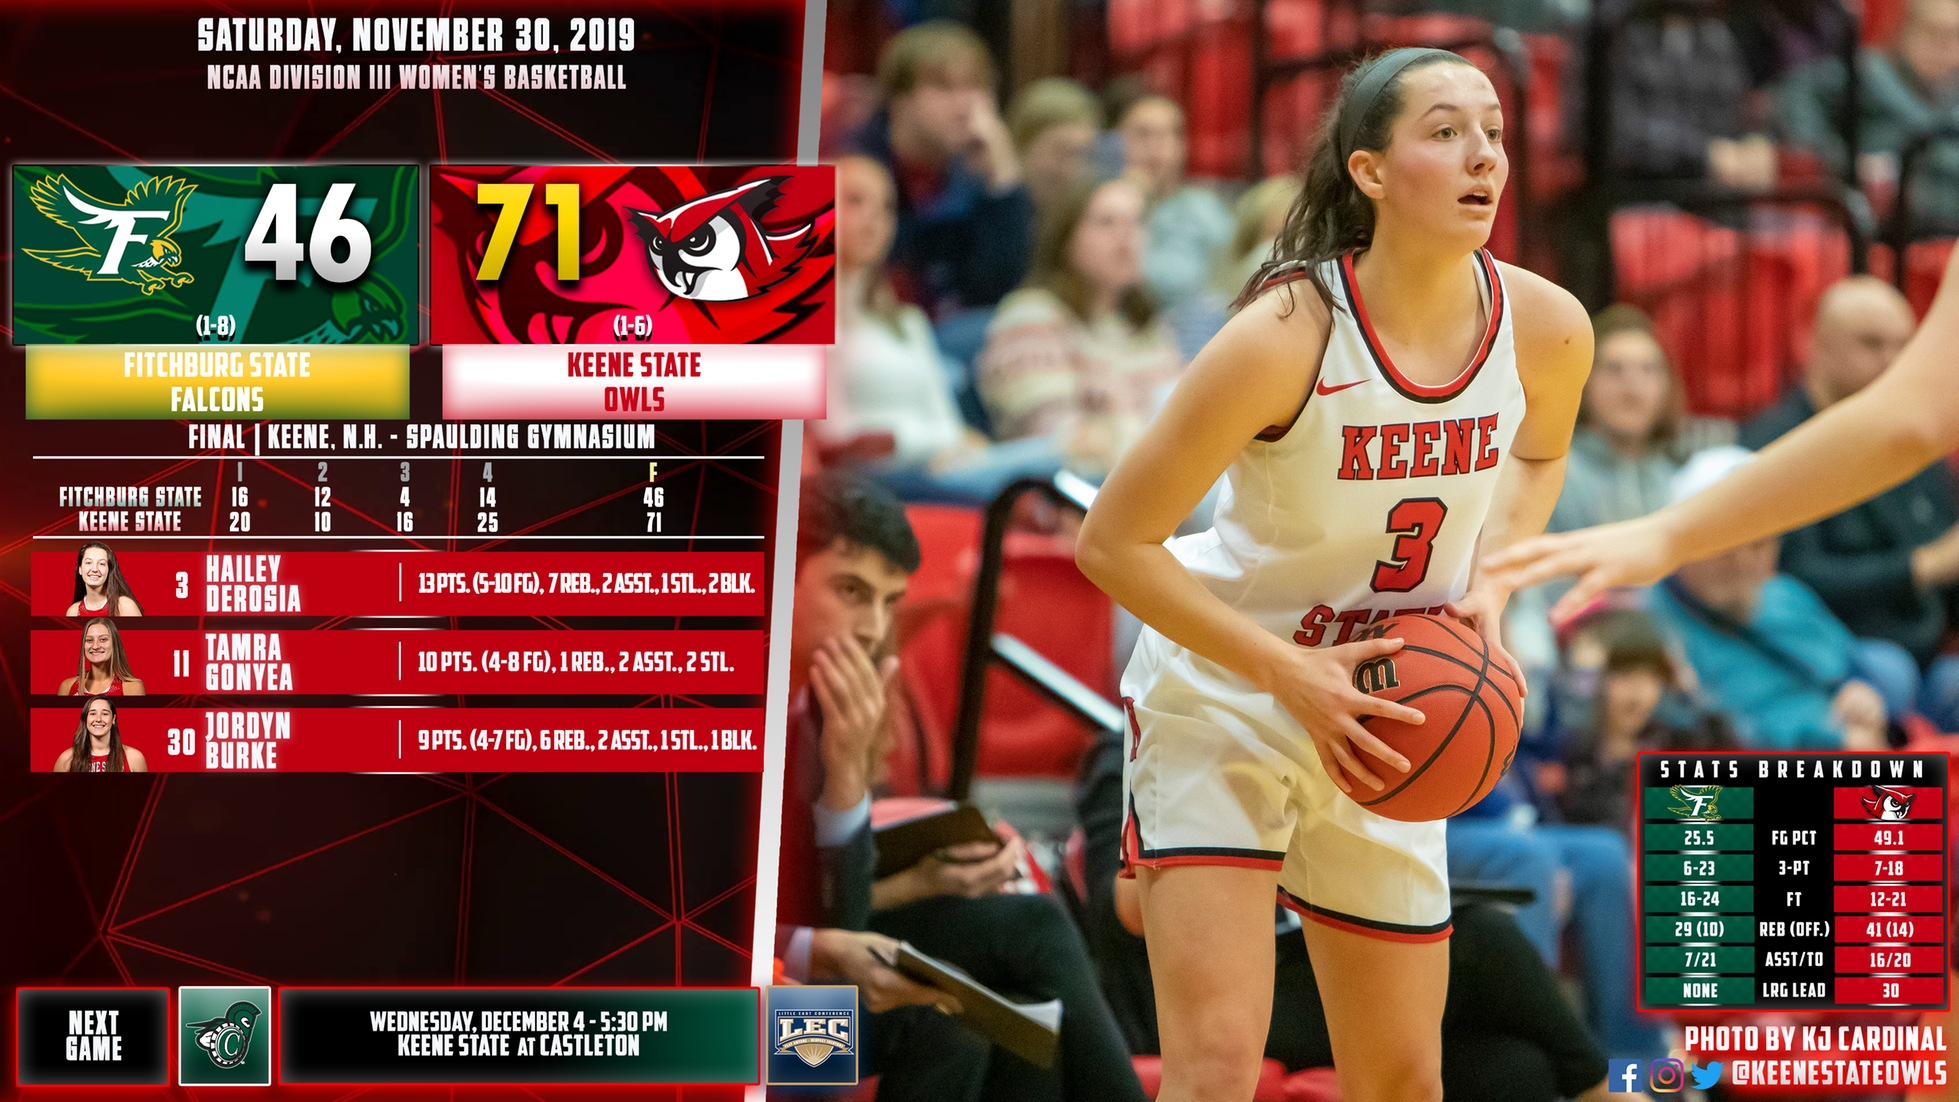 Owl Women Use Dominant Second Half to Post First Win of Season, 71-46